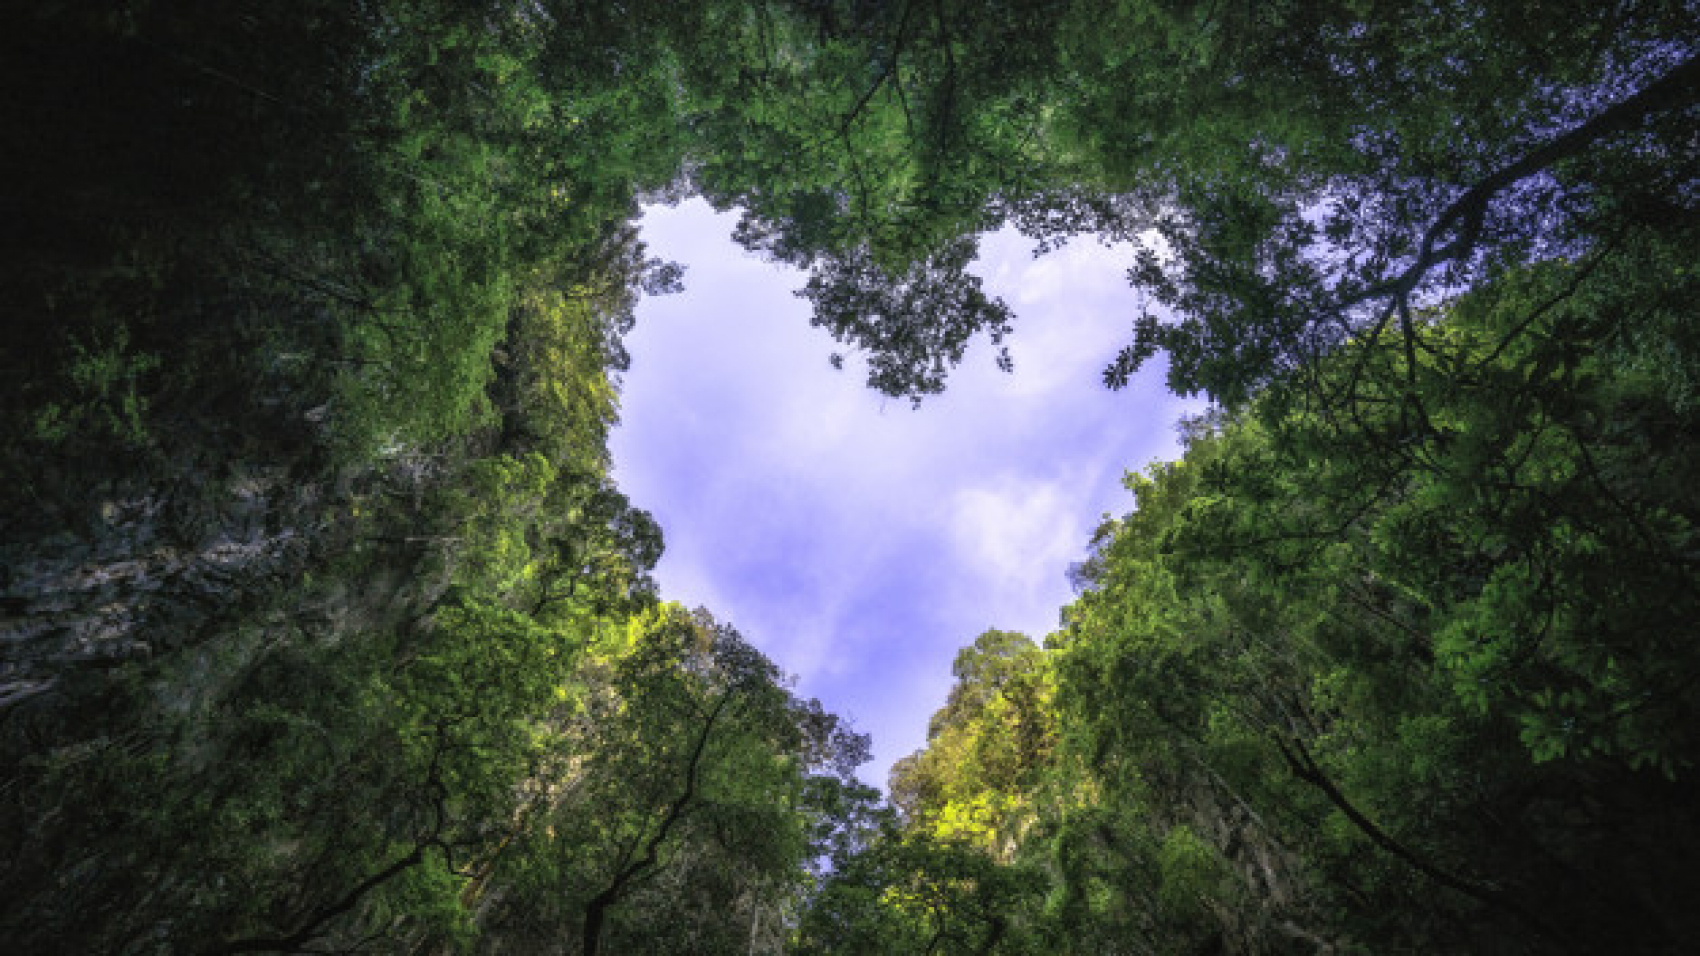 heart-shaped-photography-of-sky-in-the-rain-forest-nature-background_56644-435